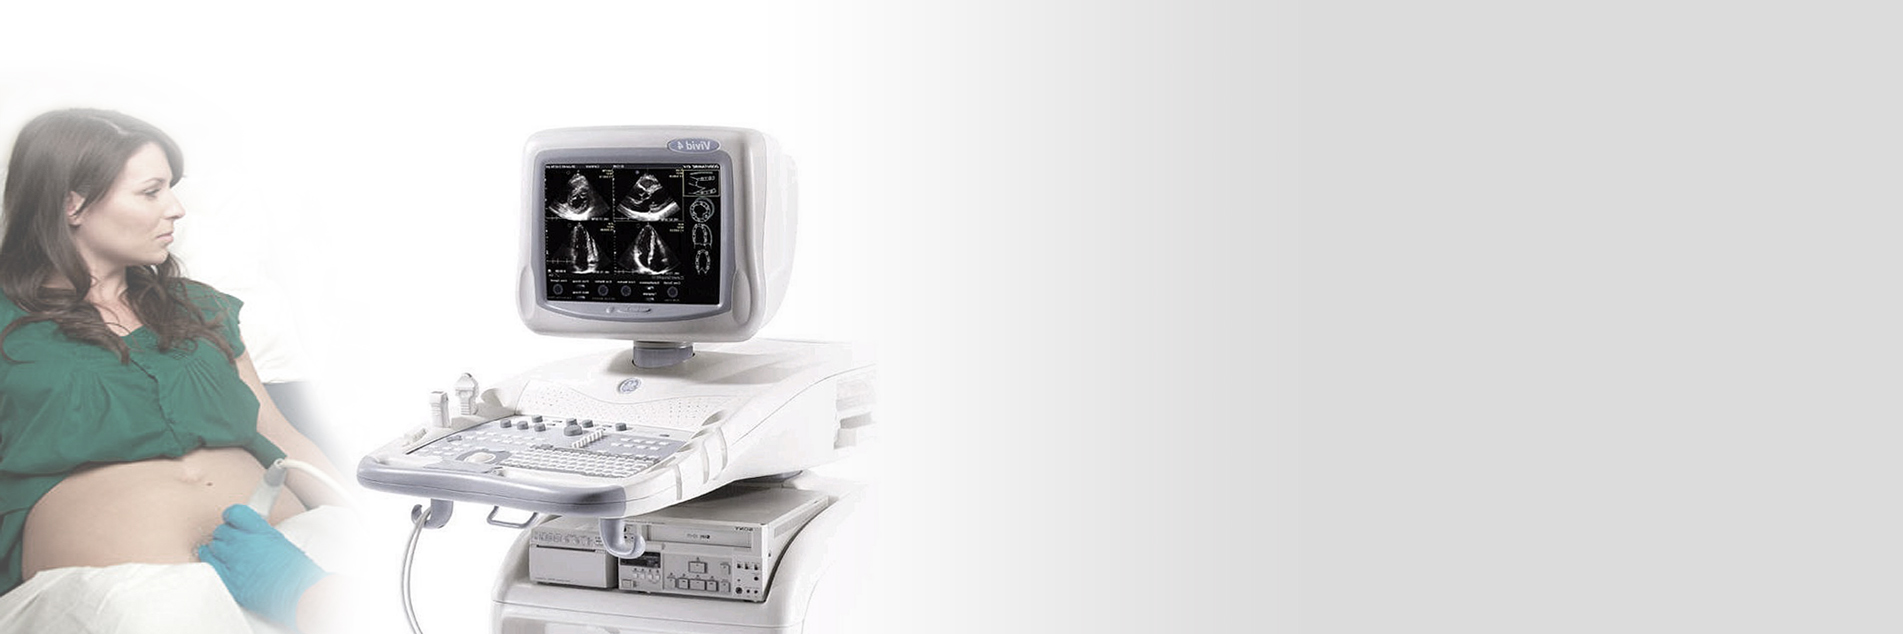 Portable Ultrasound by GE General Electric